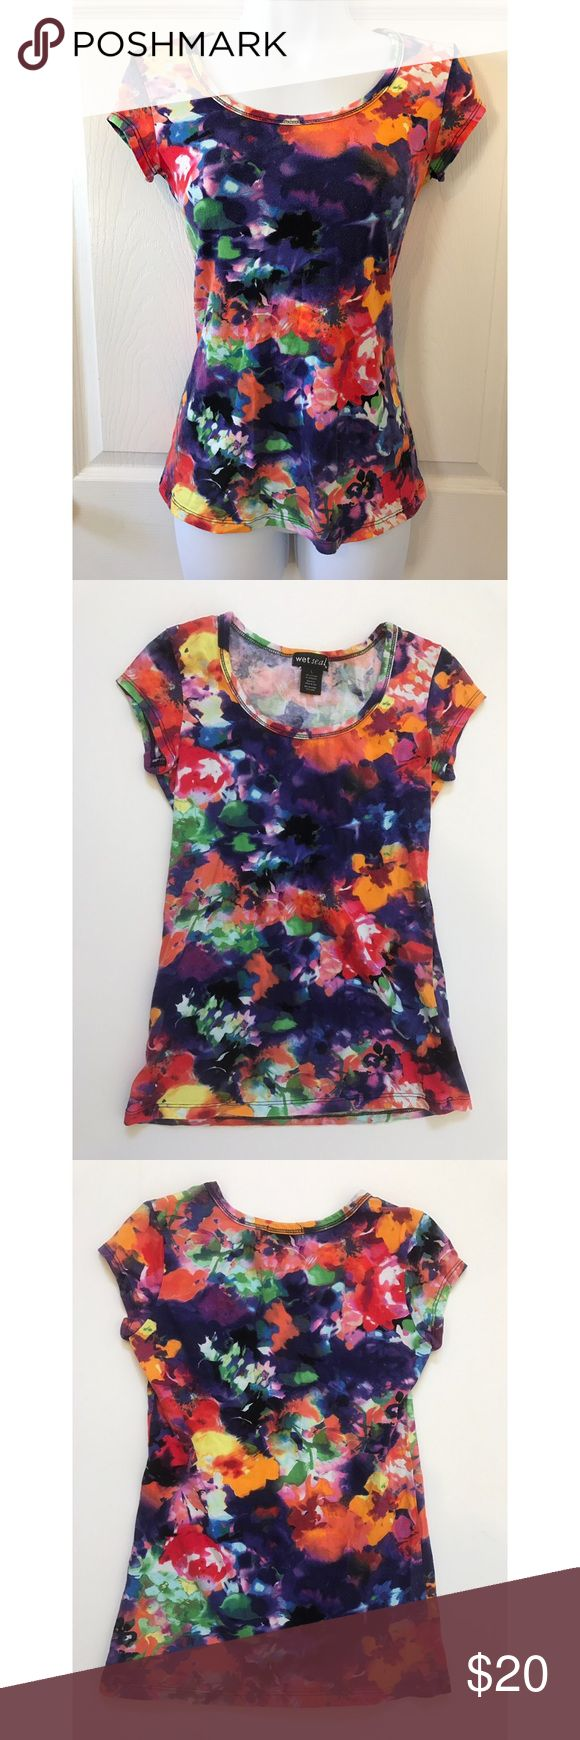 NWOT Wet Seal Floral Tee Bright and fun floral tee shirt by wet seal. Paint style flowers of all colors perfectly splashed across this tee. Perfect for spring and summer:) 95% cotton 5% spandex Wet Seal Tops Tees - Short Sleeve